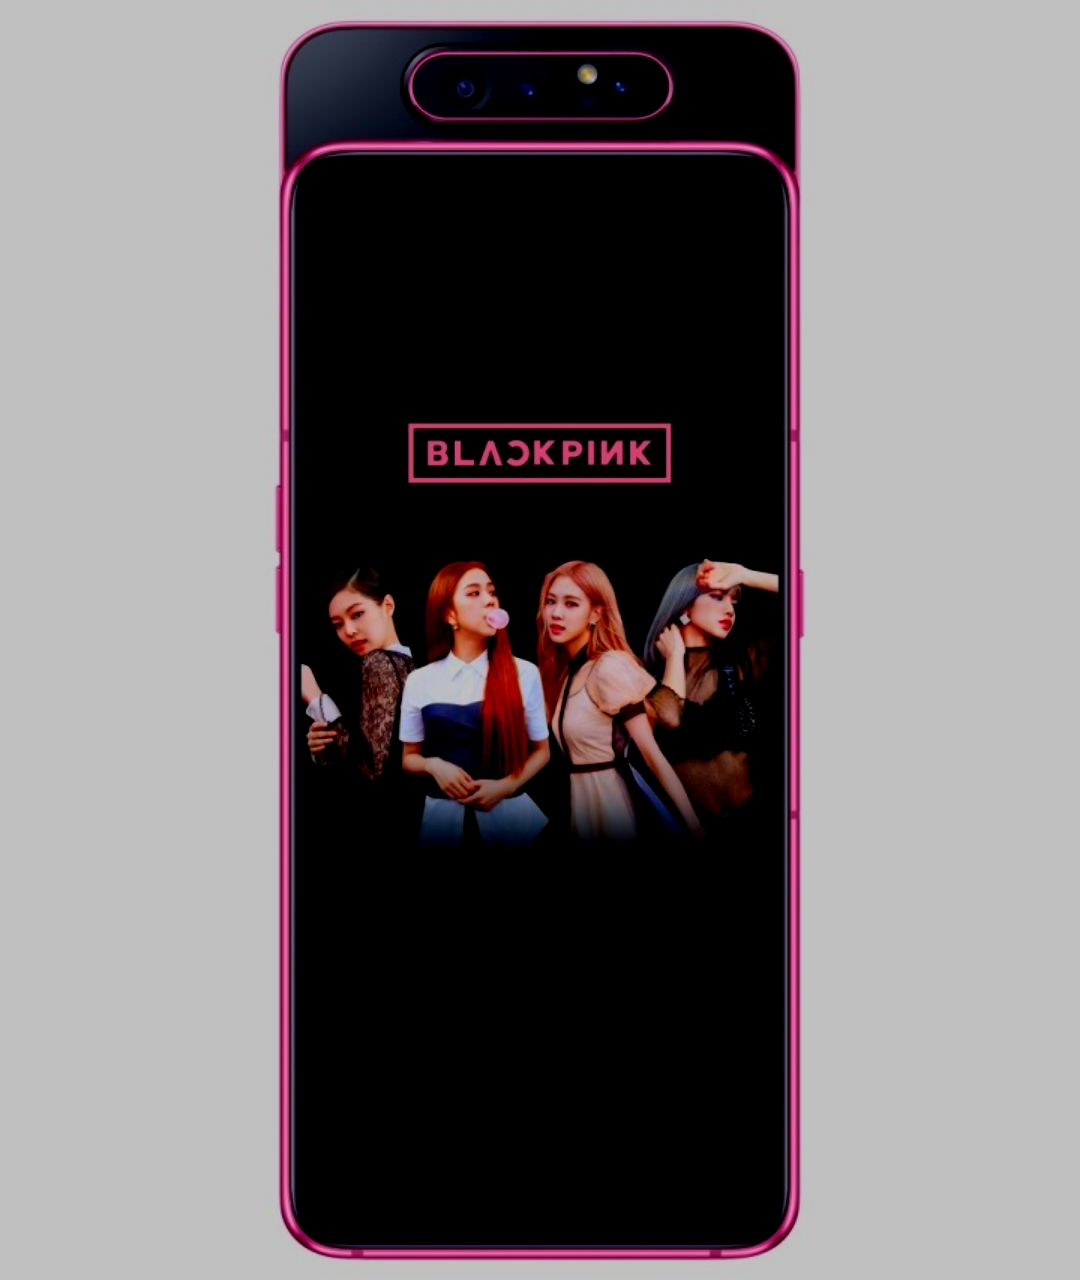 Samsung Galaxy A80 Blackpink Charges 23 Million Vnd In